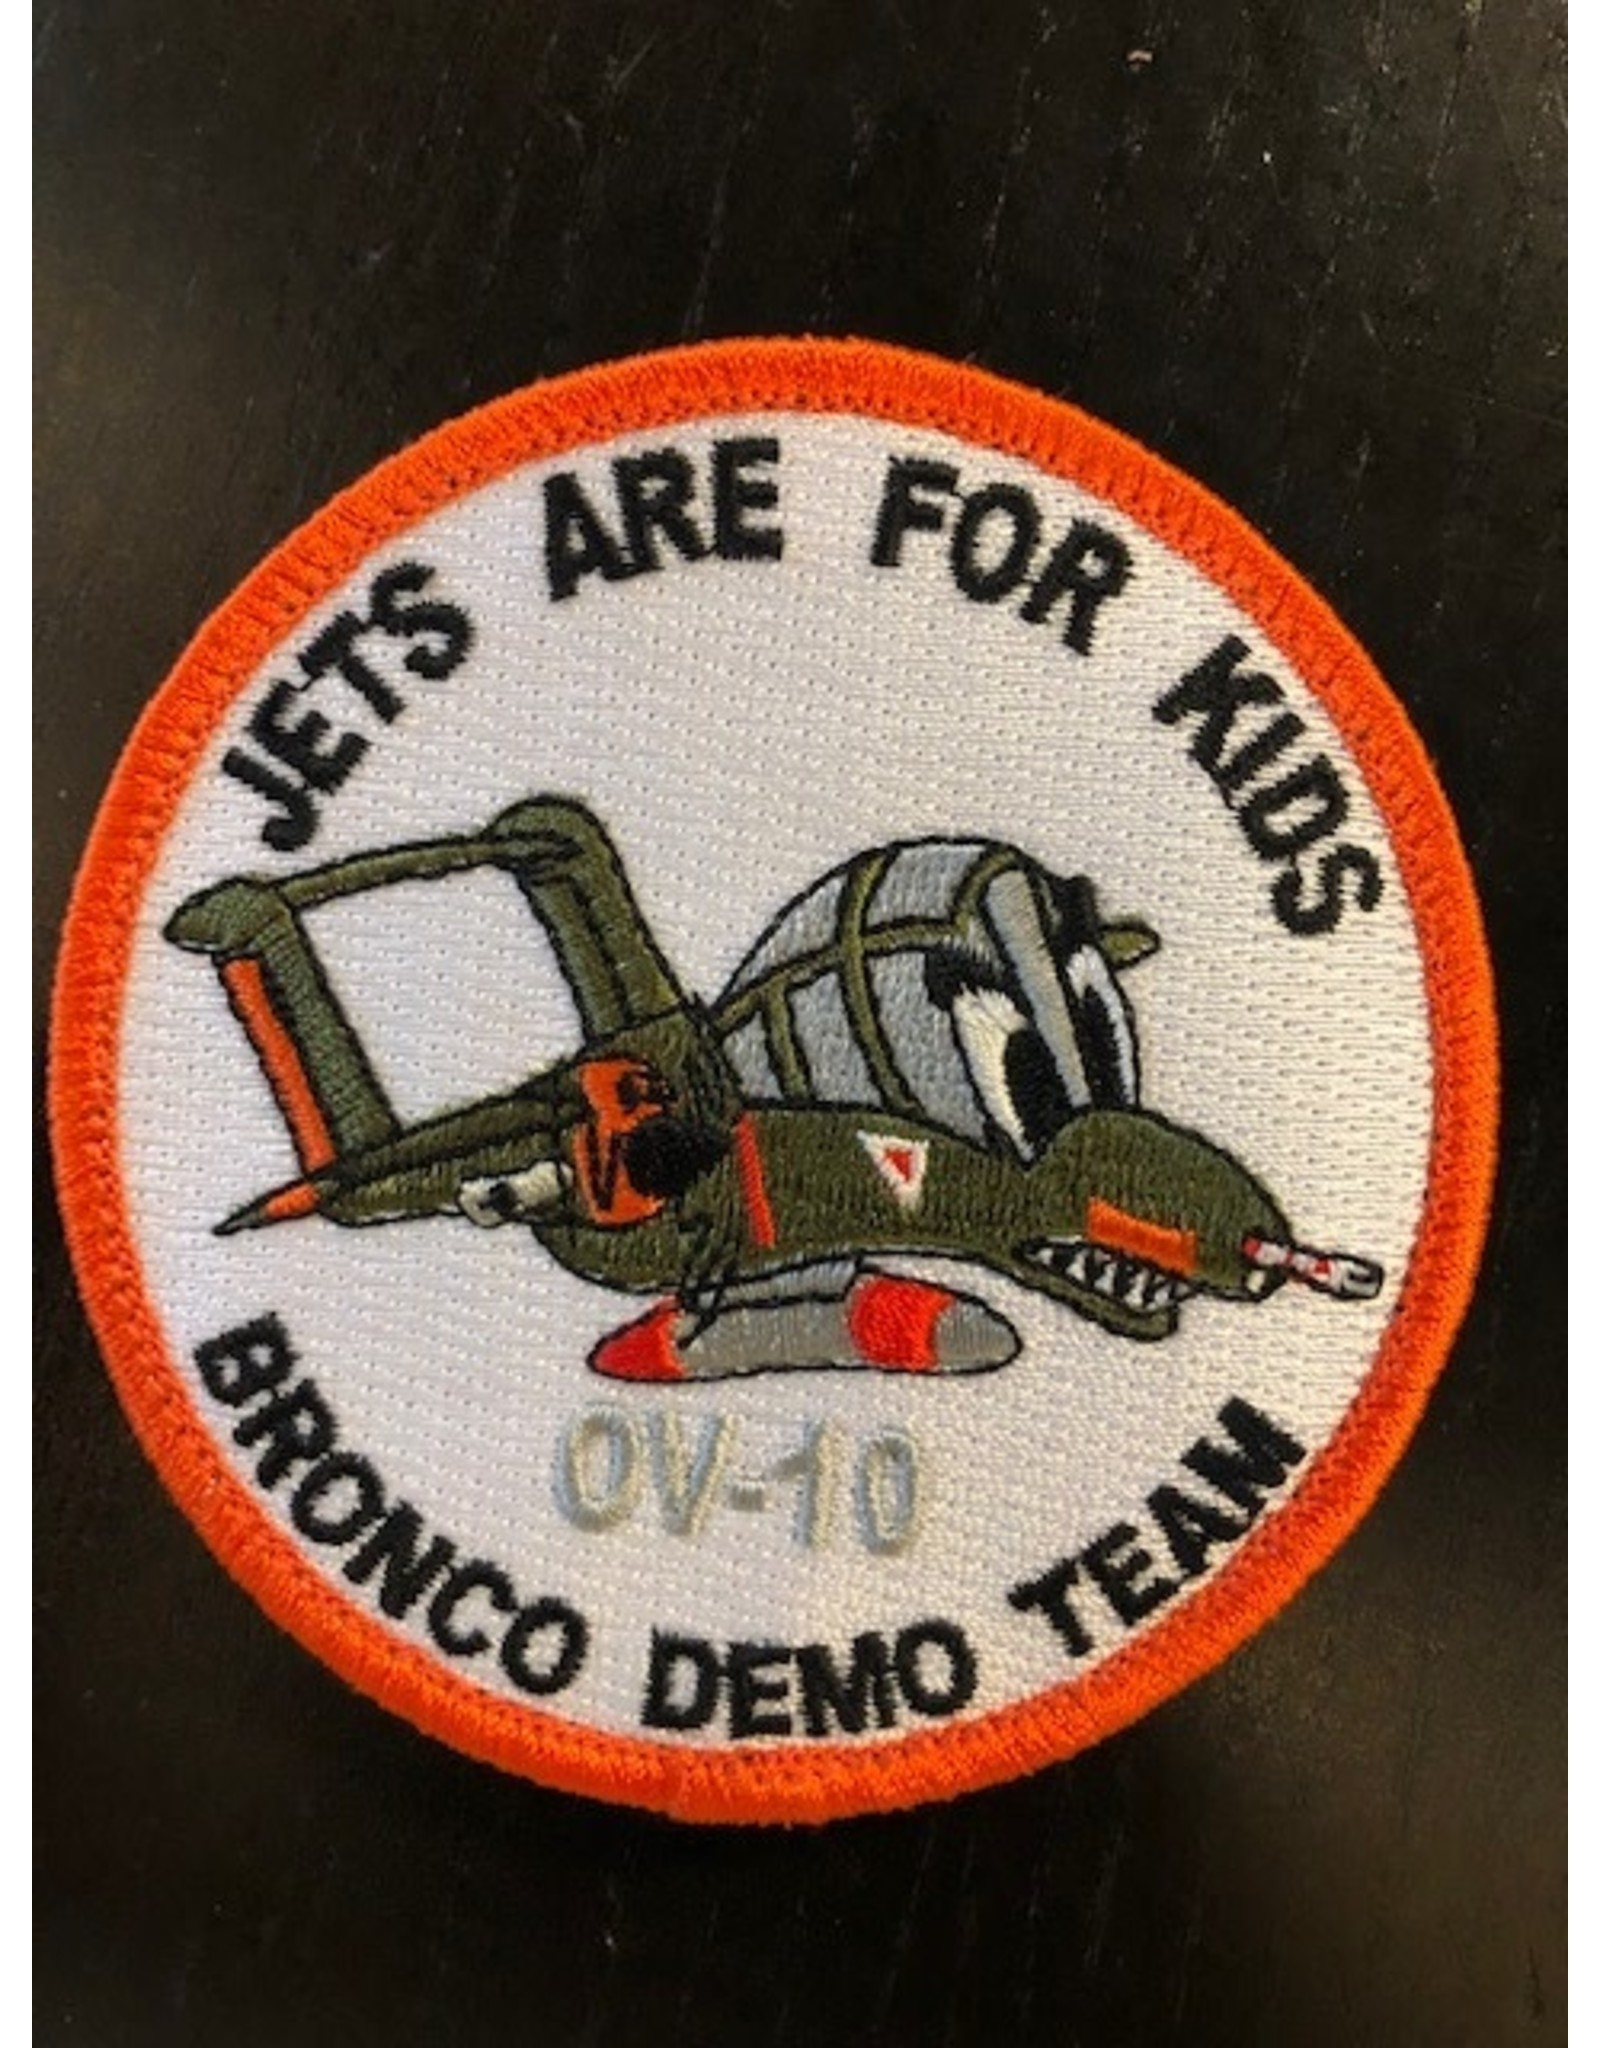 Bronco Demo Team Jets Are For Kids OV-10, patch